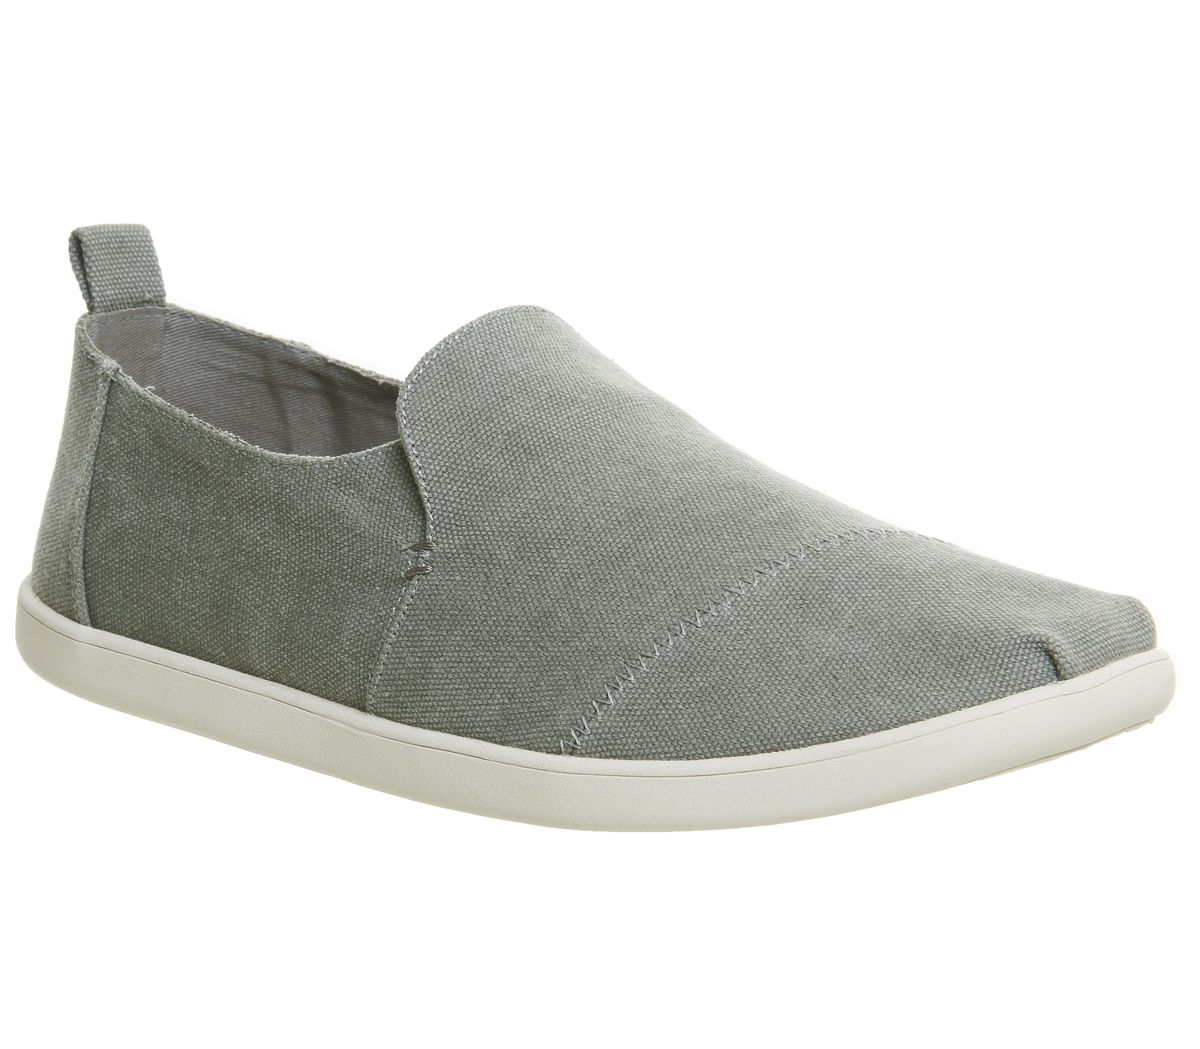 b48a1a74113 Toms Alpargata Deconstructed Drizzle Grey Washed Canvas - Casual